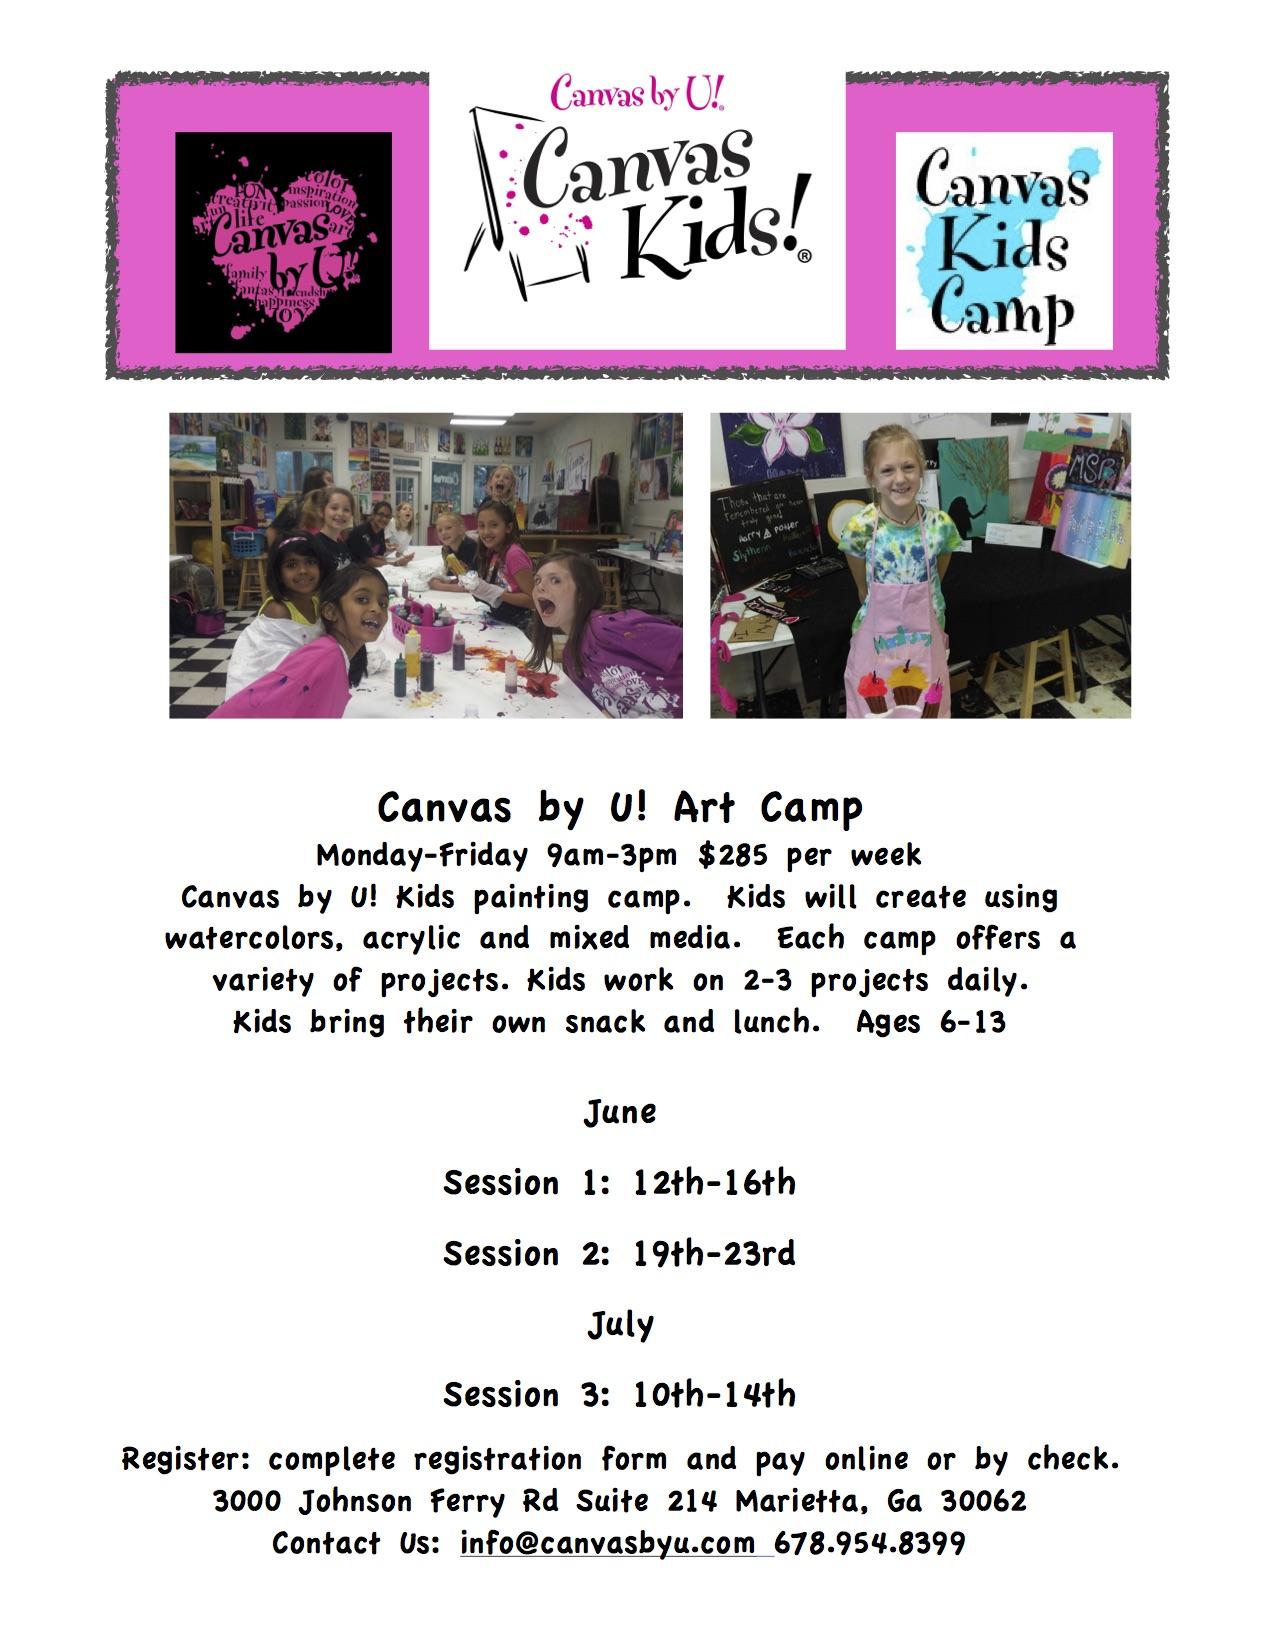 canvas by u kids camps